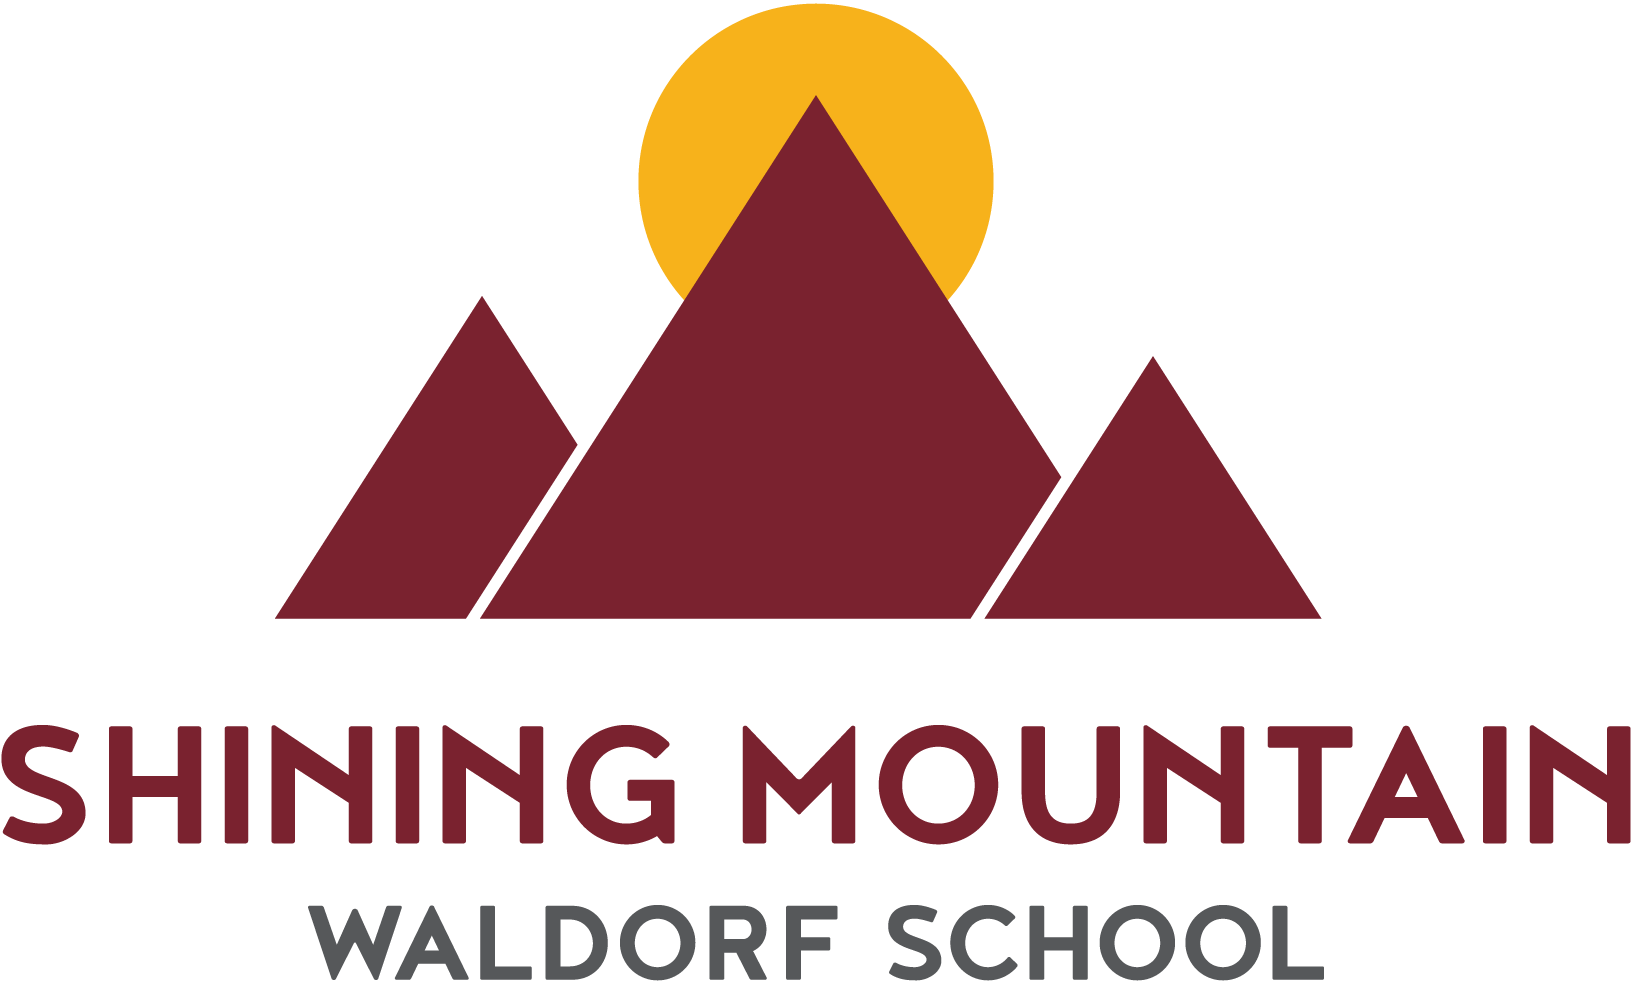 Truth, Beauty & Goodness - Shining Mountain Waldorf School ...